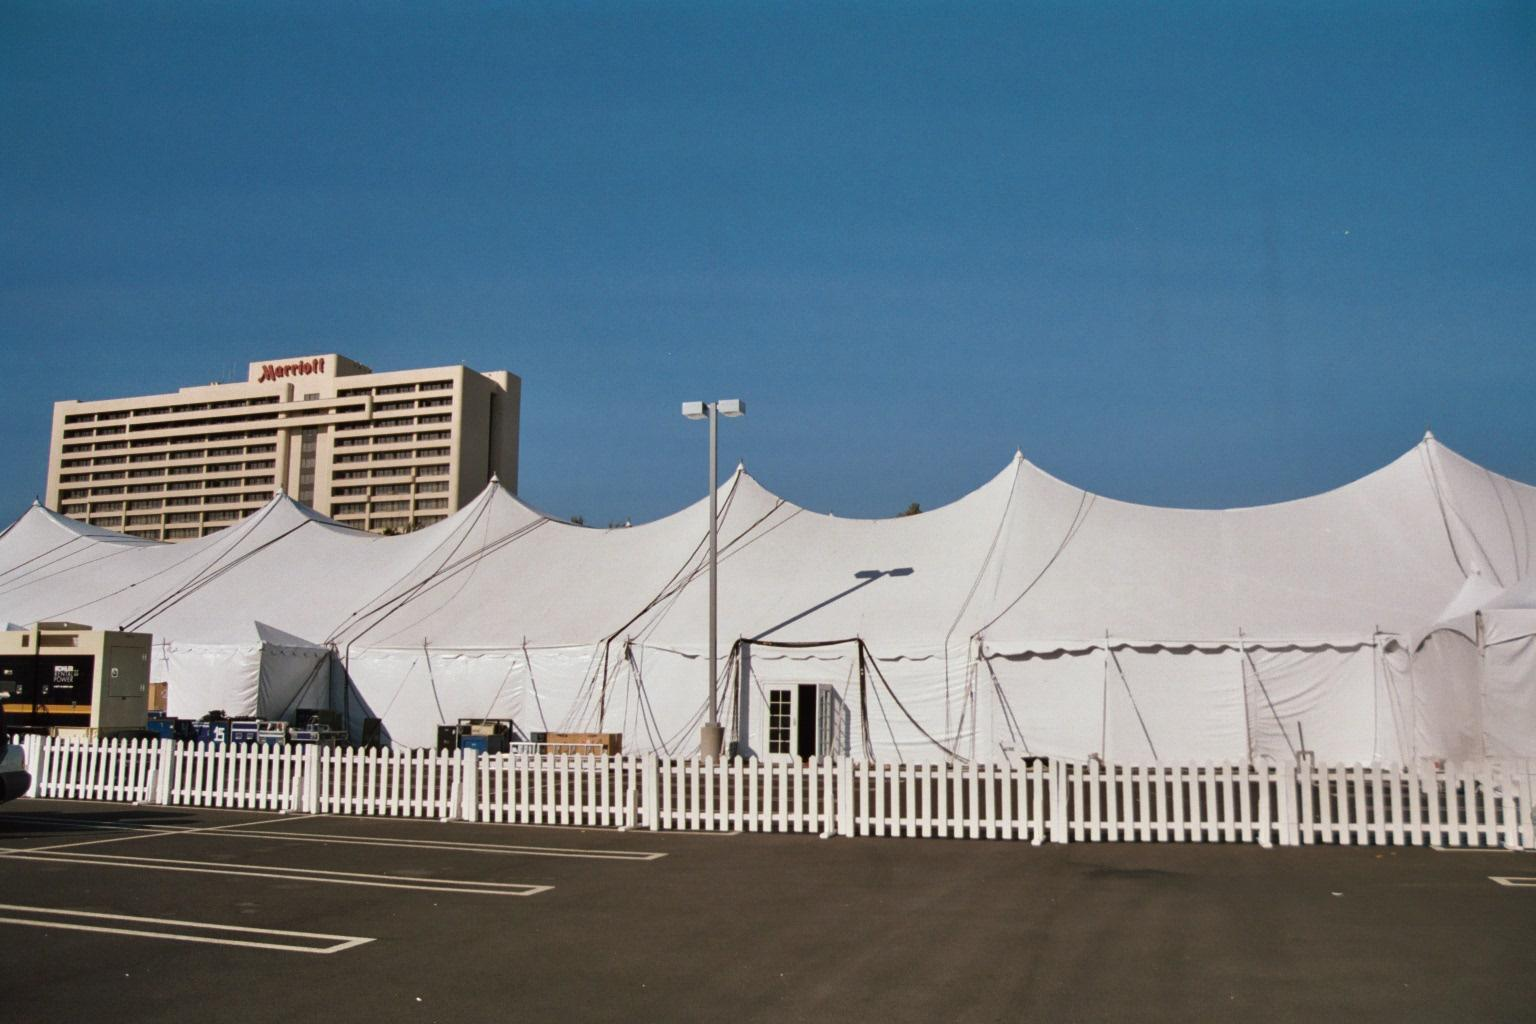 037 34A - Tenting